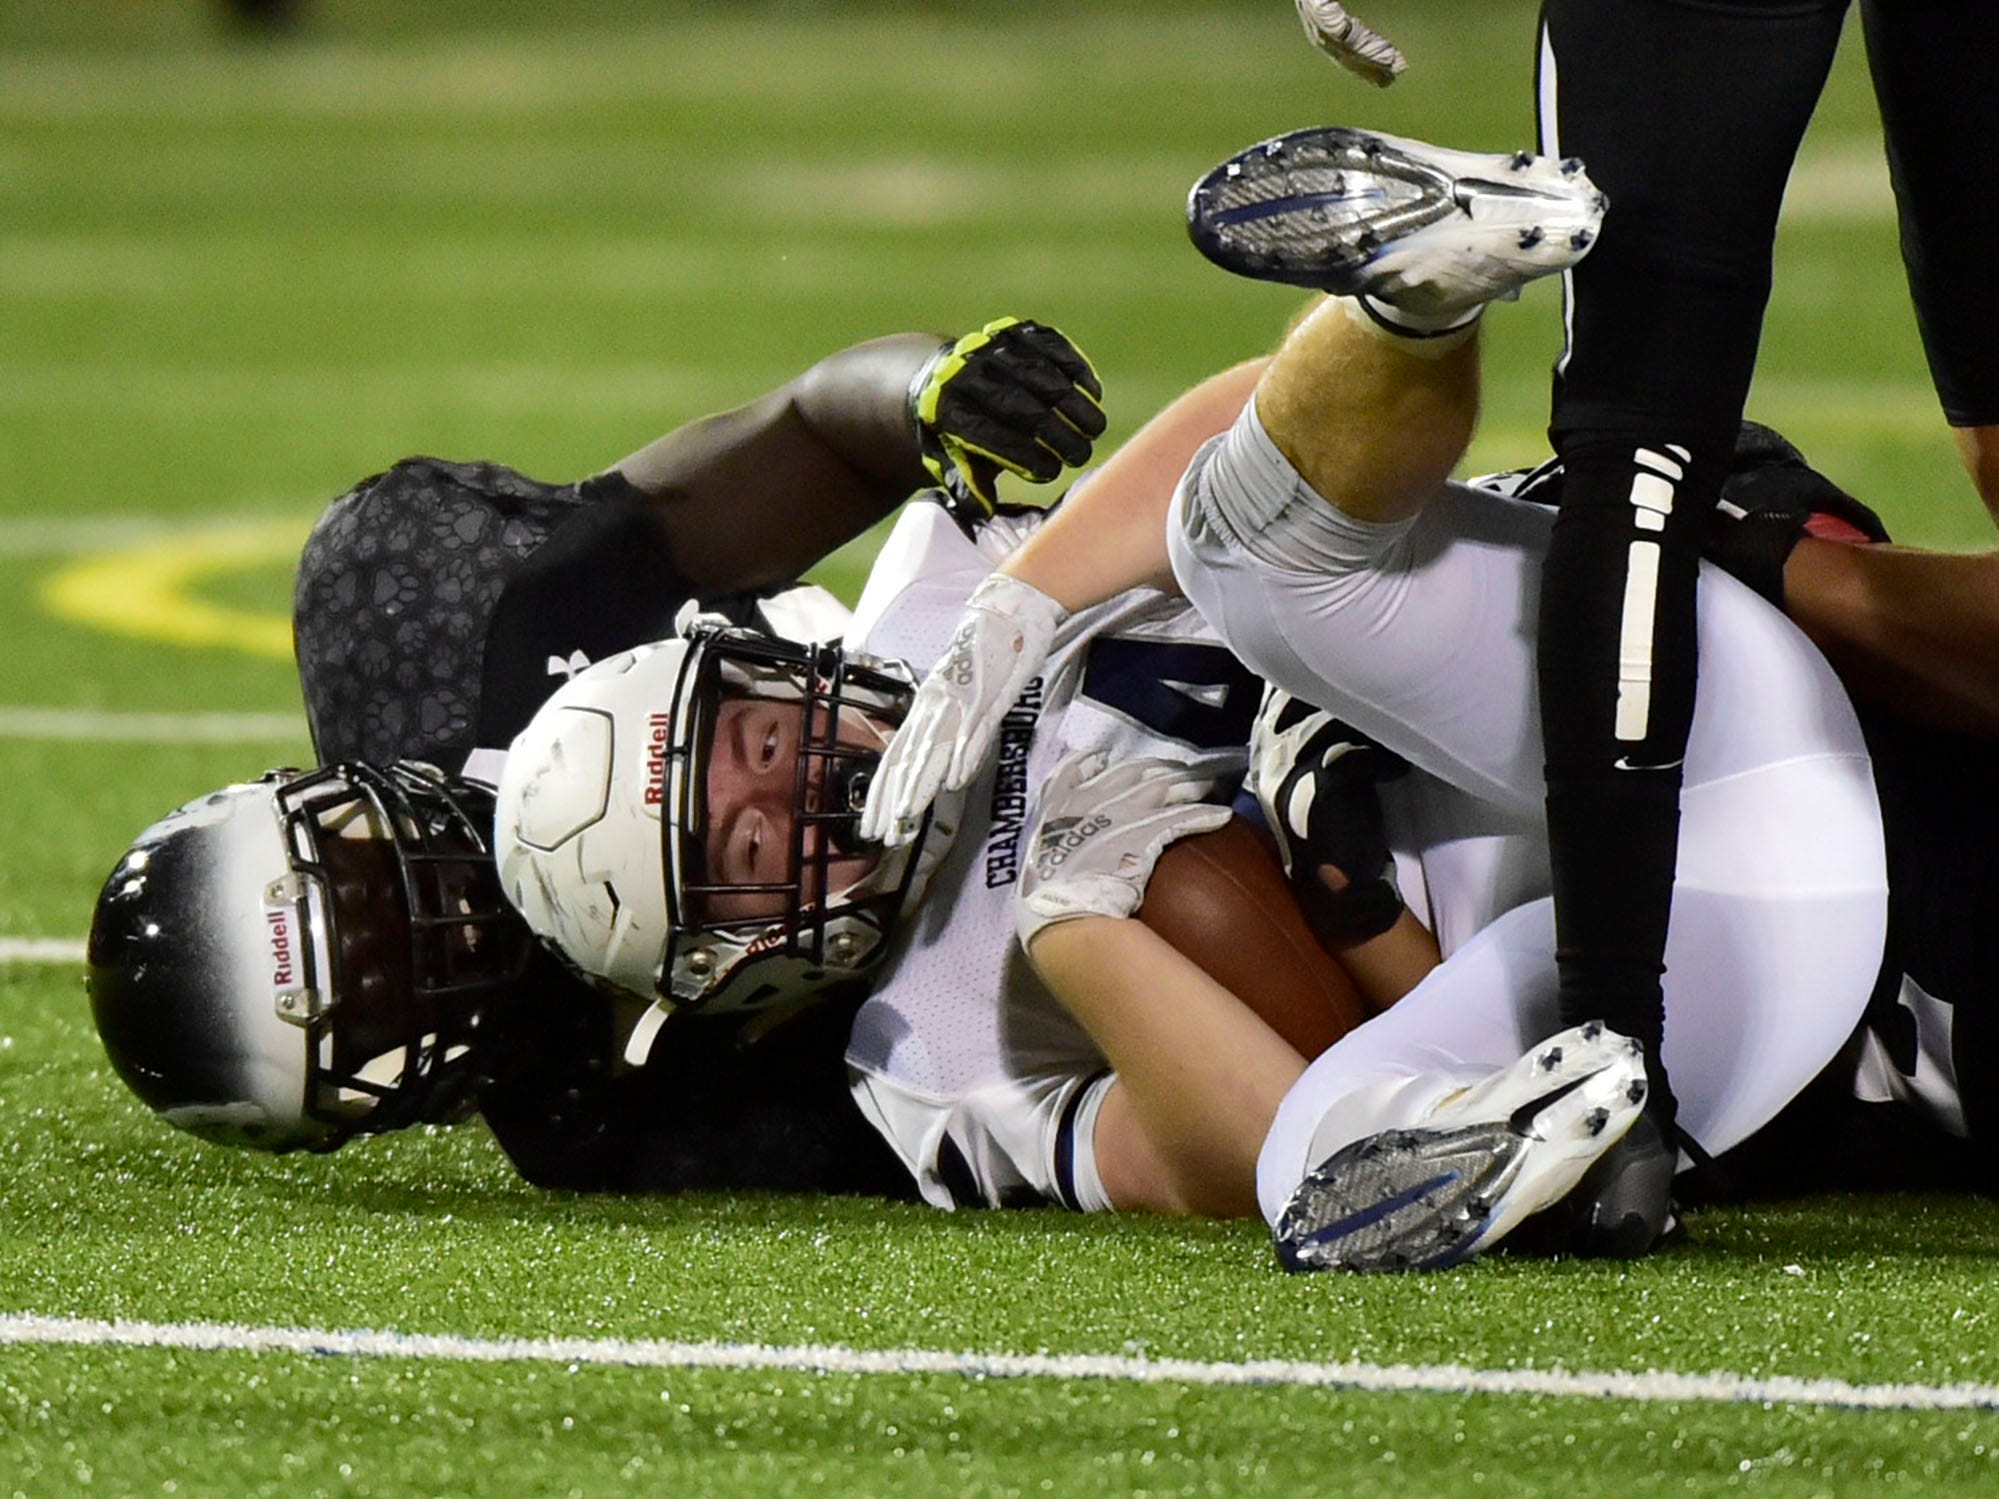 Chambersburg's Andrew Shetter (24) is tackled after a gain for the Trojans. Chambersburg Trojans jumped ahead of Central Dauphin East to win 26-20 in PIAA football on Friday, October 5, 2018.